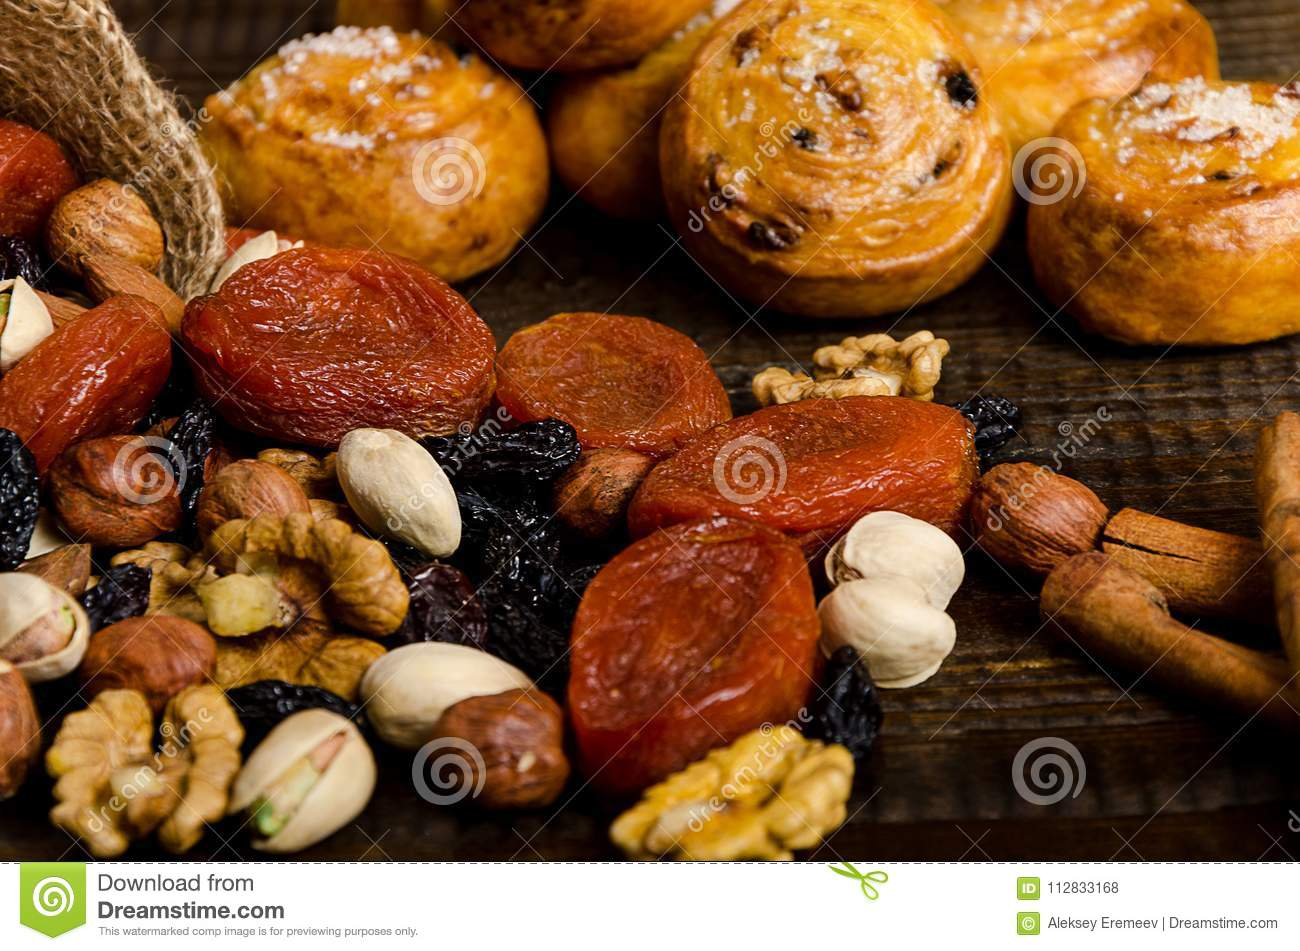 Nuts, dried fruits, pistachios and homemade cookies are scattered from the bag on the table